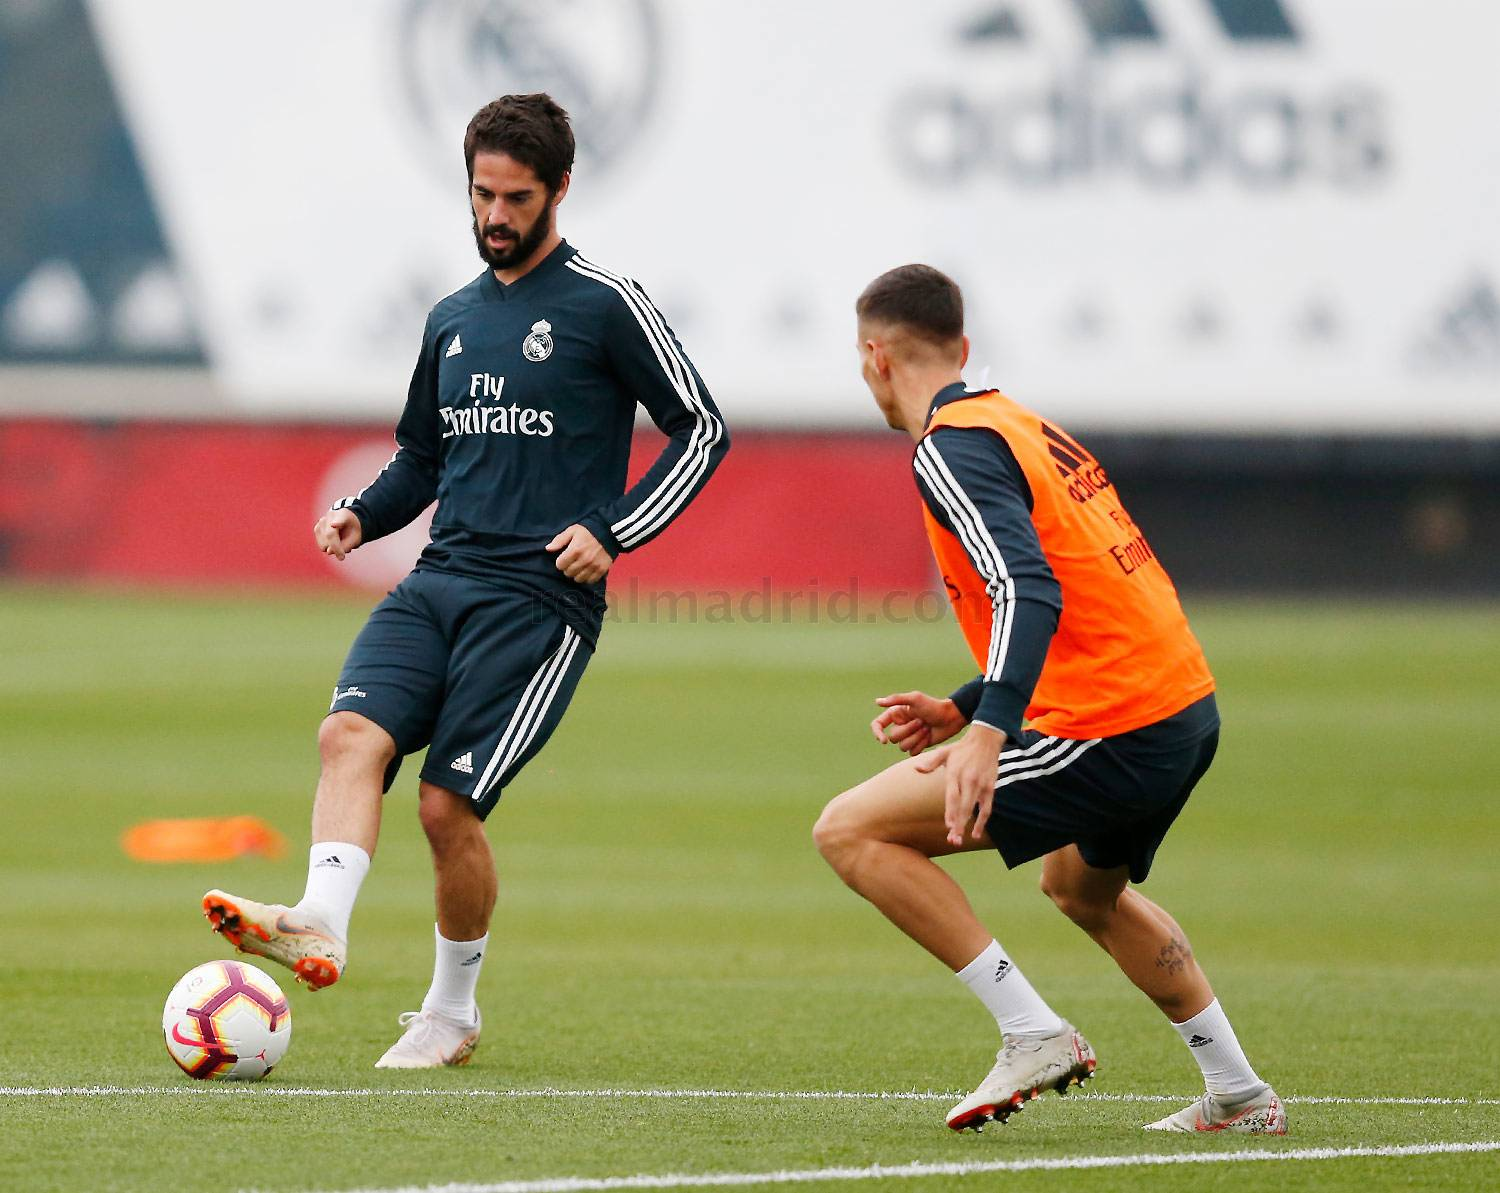 Real Madrid - Entrenamiento del Real Madrid - 15-10-2018